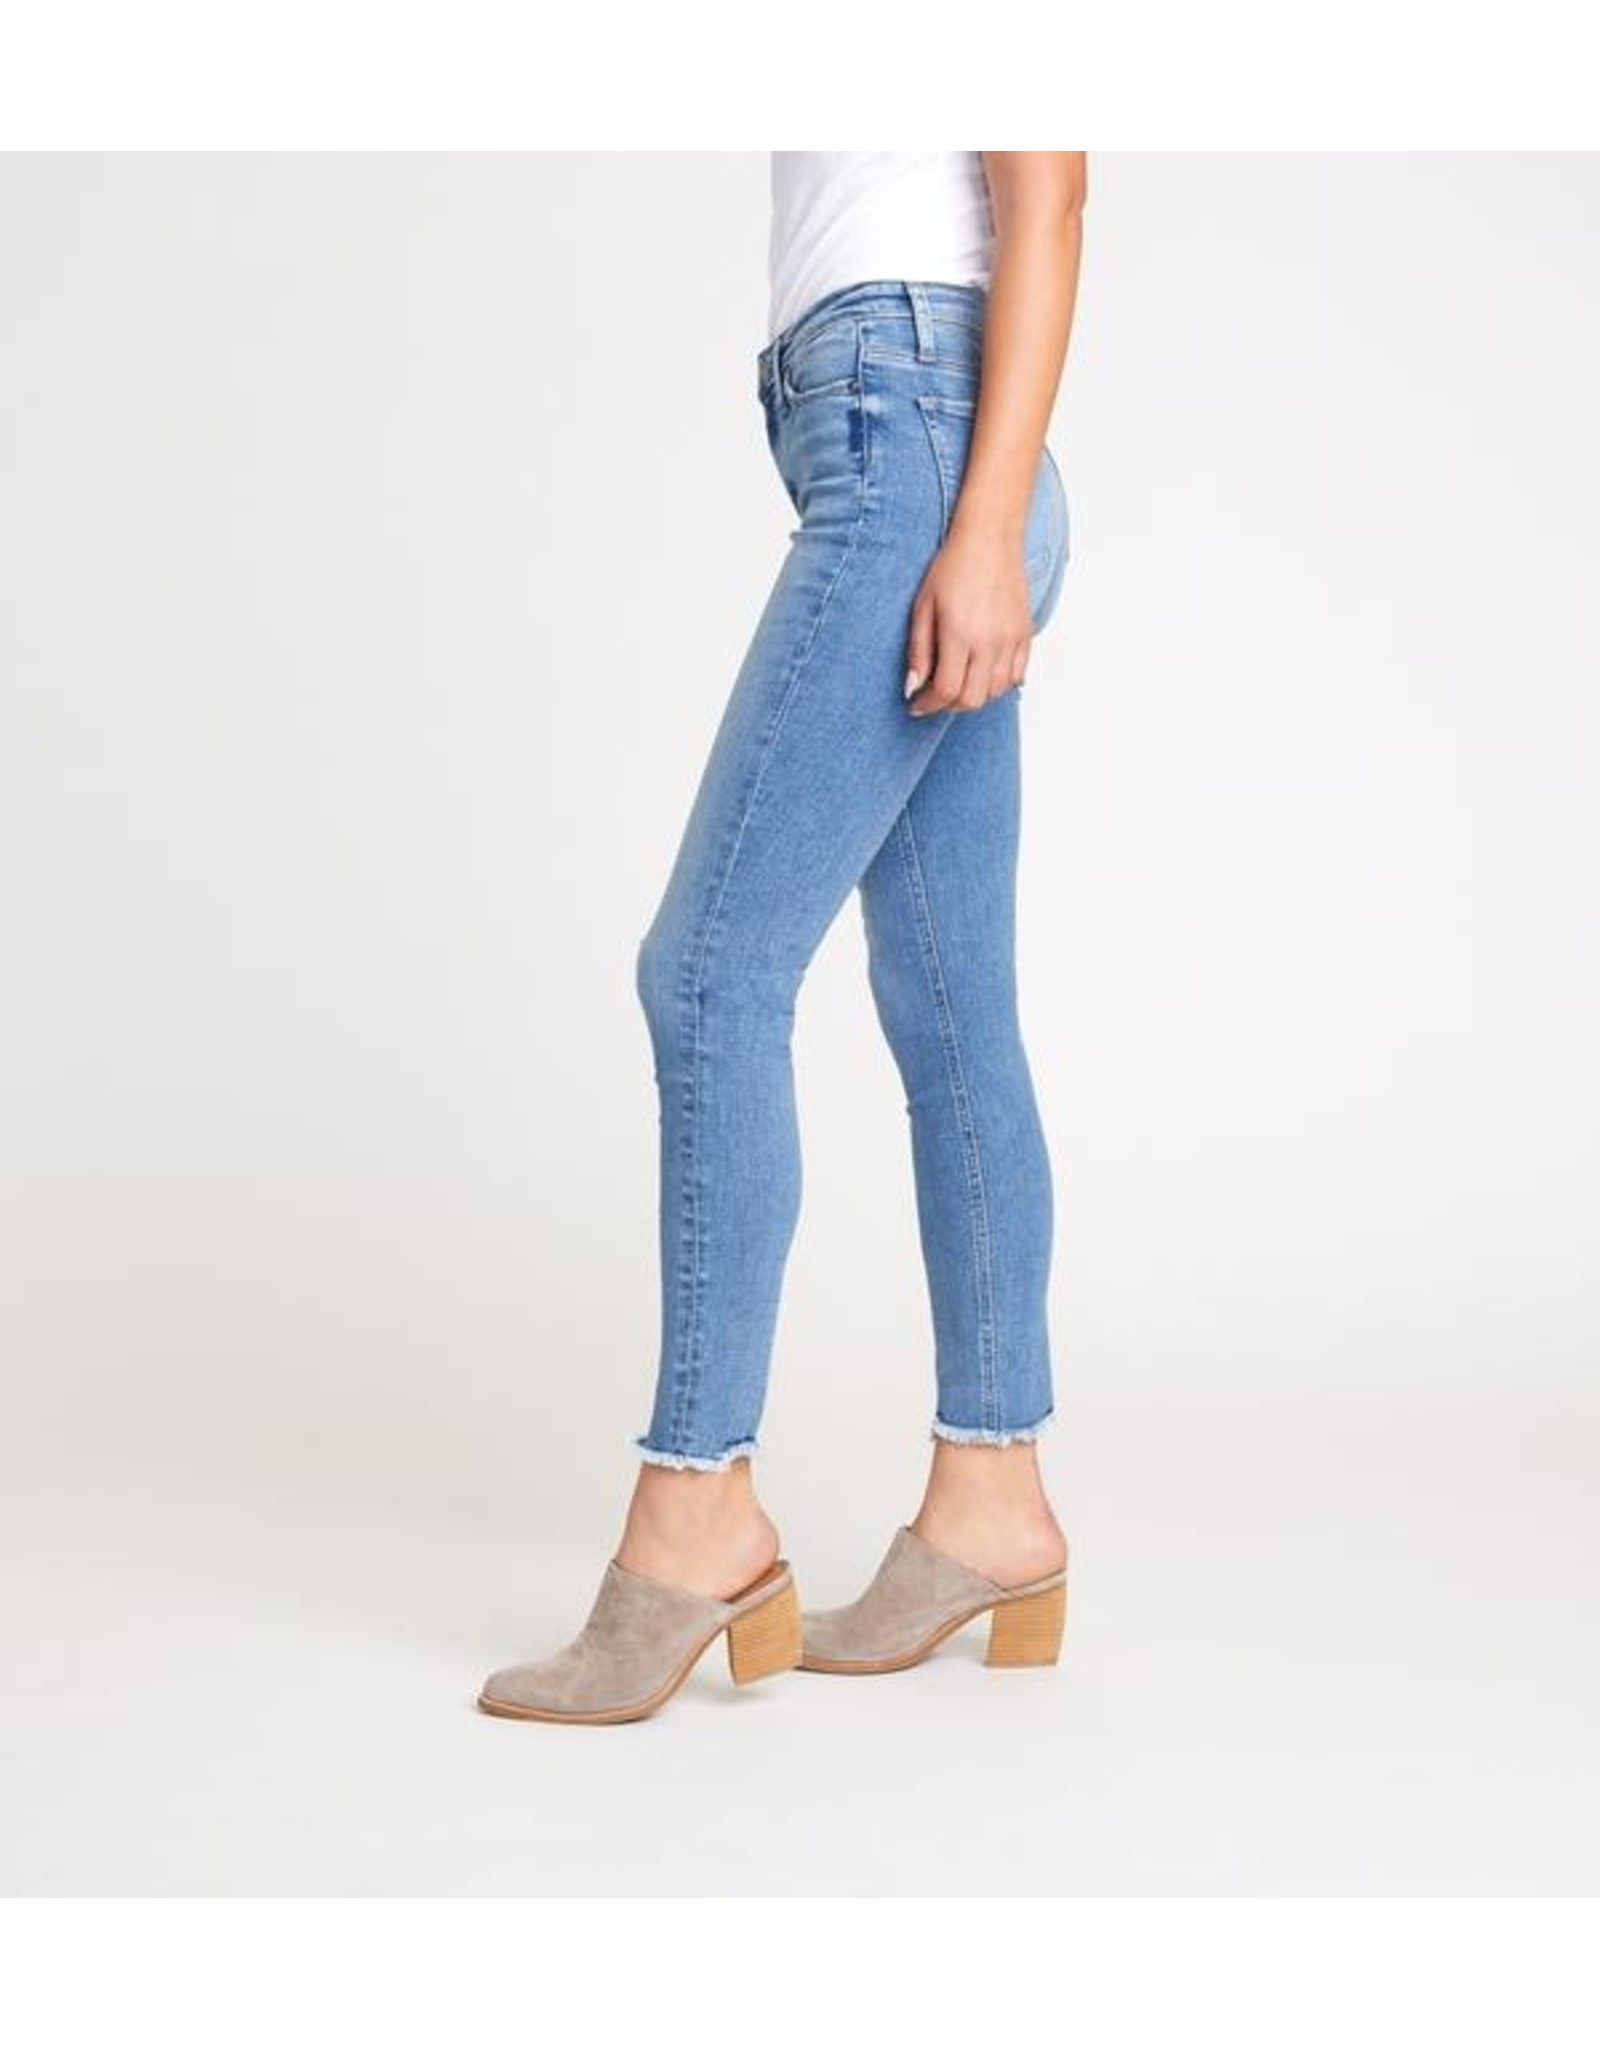 Silver Jeans High Note Jeans